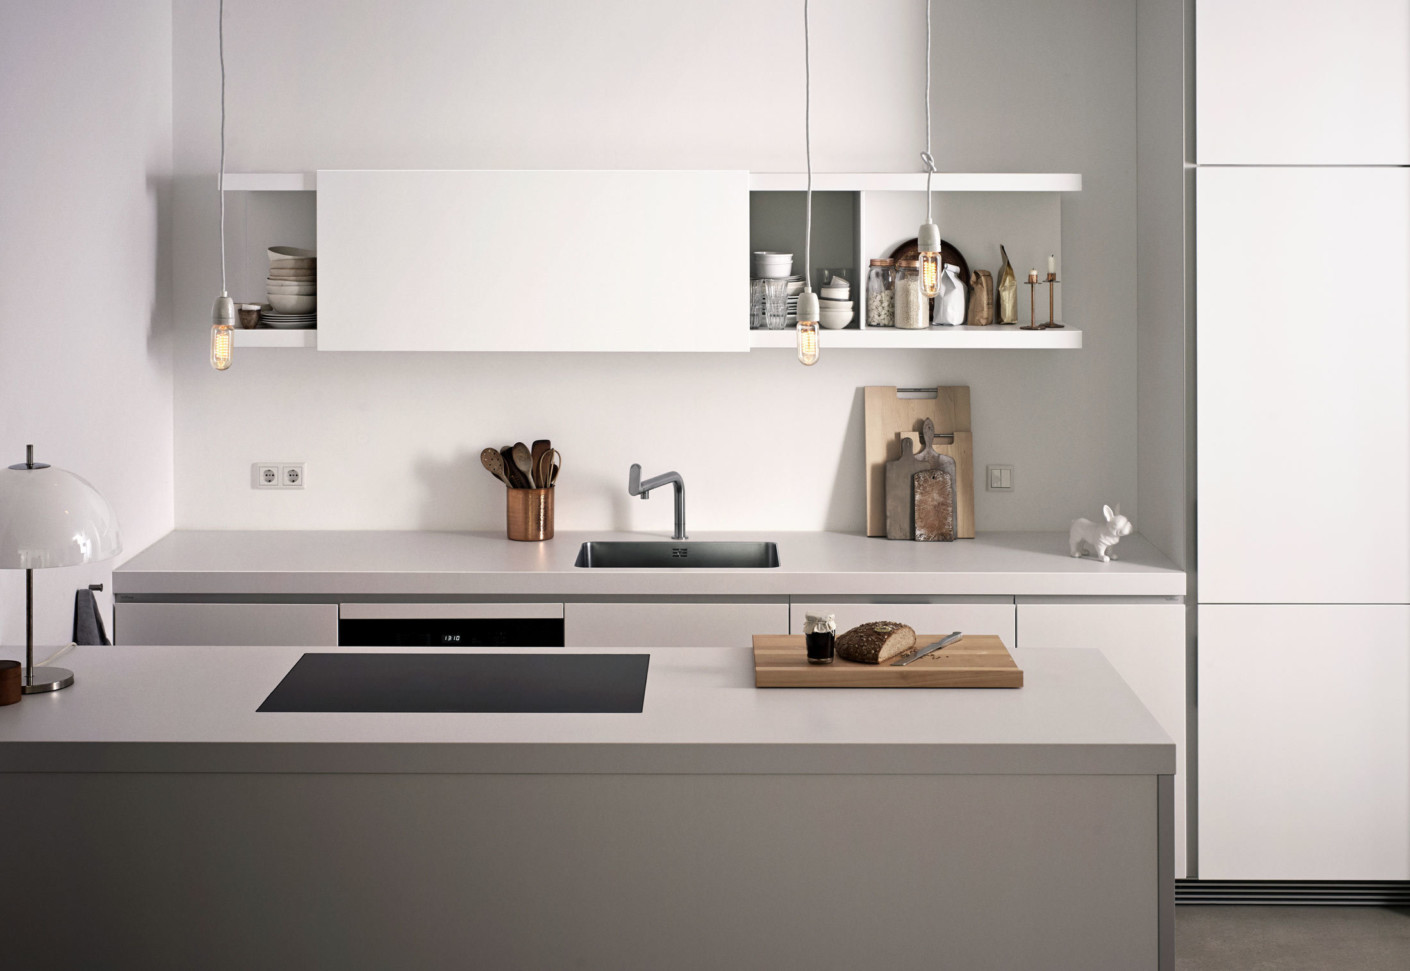 Cabinets For The Kitchen Bulthaup B1 By Bulthaup Stylepark